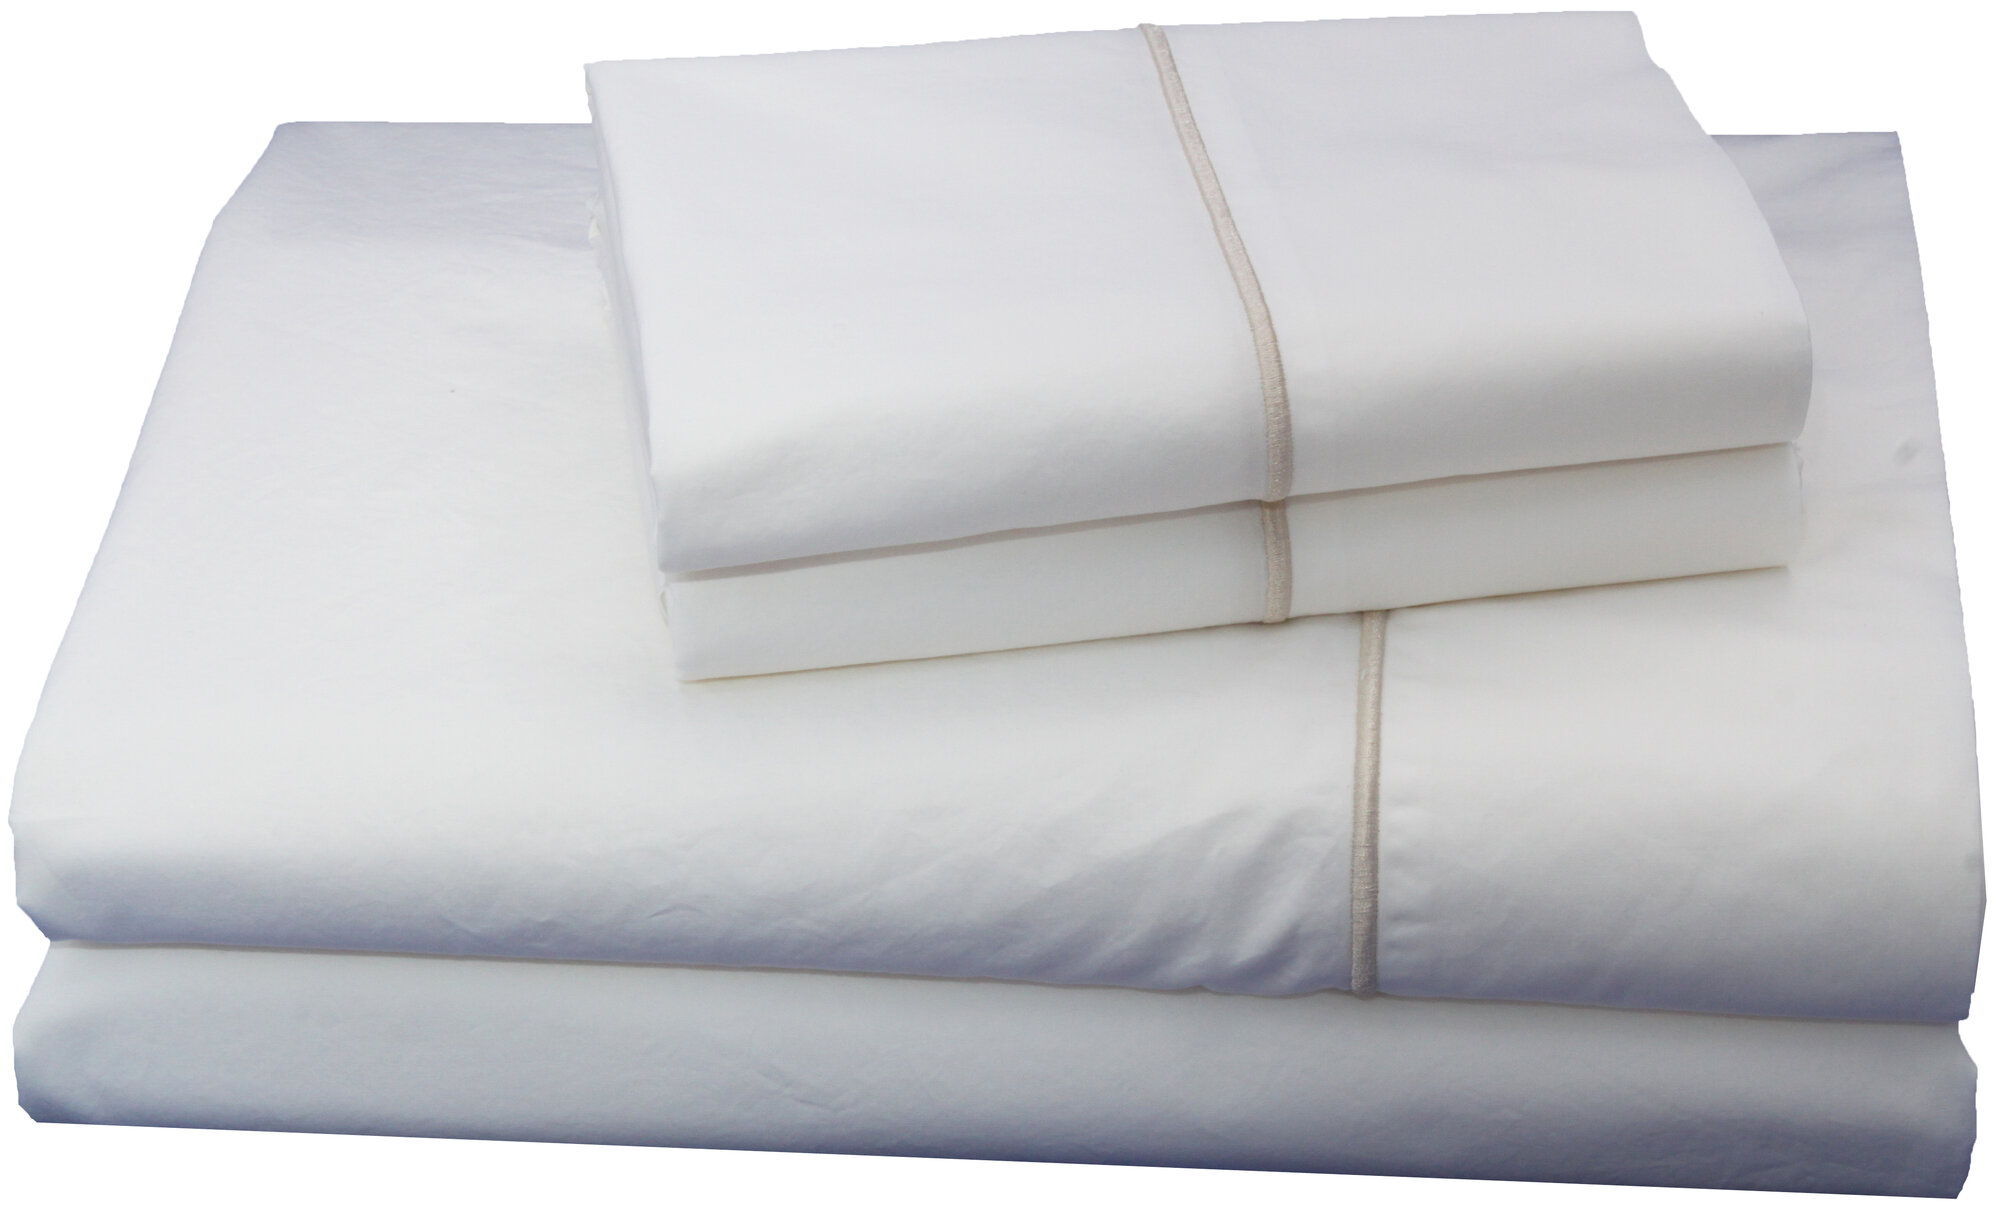 embroidered luxurious long staple 100 cotton percale sheet set ebay. Black Bedroom Furniture Sets. Home Design Ideas